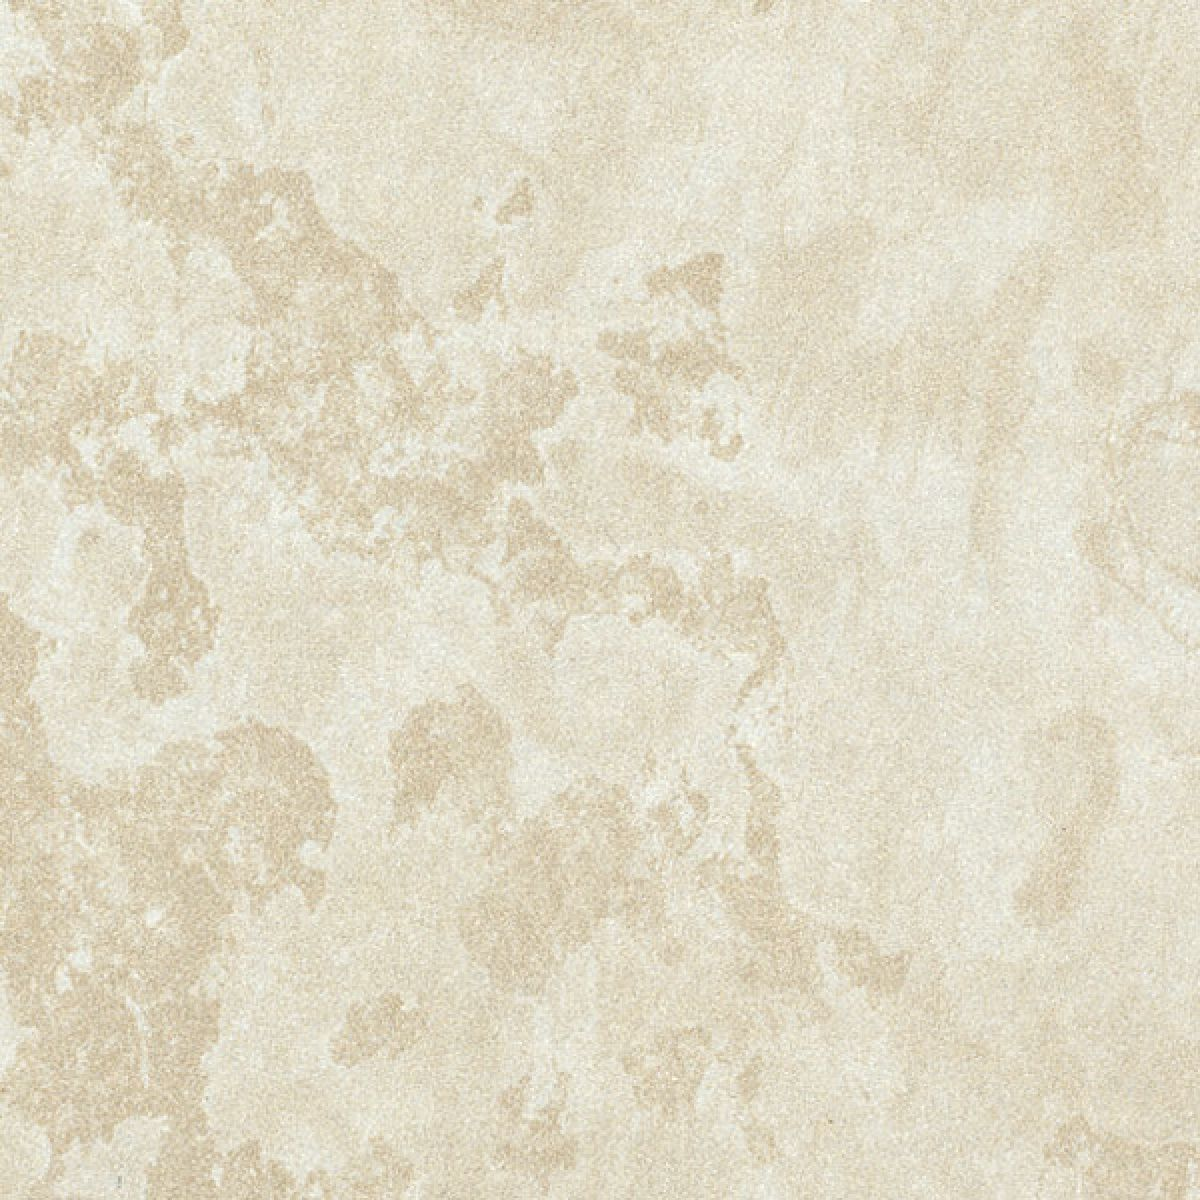 Wetwall Classic Natural Pearl Shower Panel